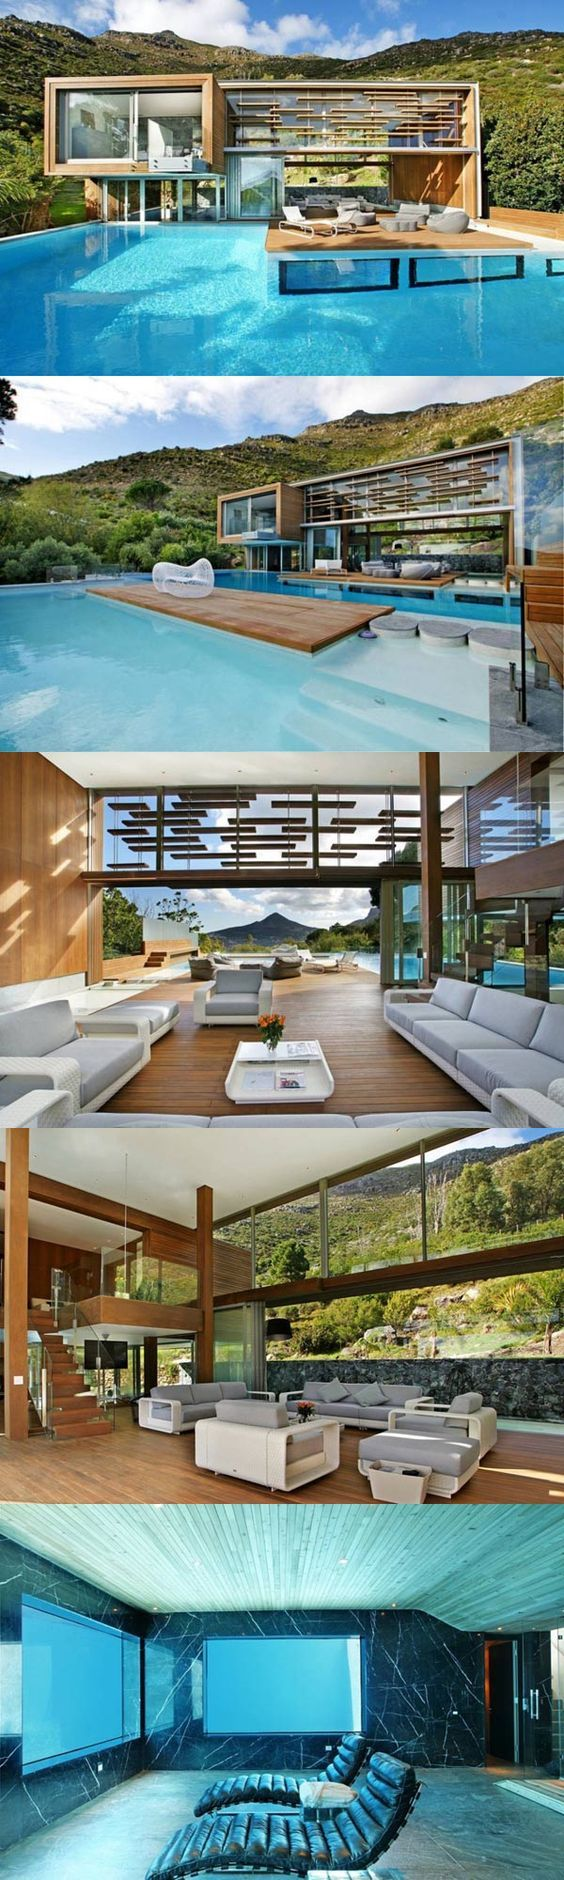 ☮ Modern Architecture Luxurious Architecture. The architects of Metropolis Design created the relaxing Spa House located in Cape Town, South Africa. from www.archdaily.com... - Dream Homes